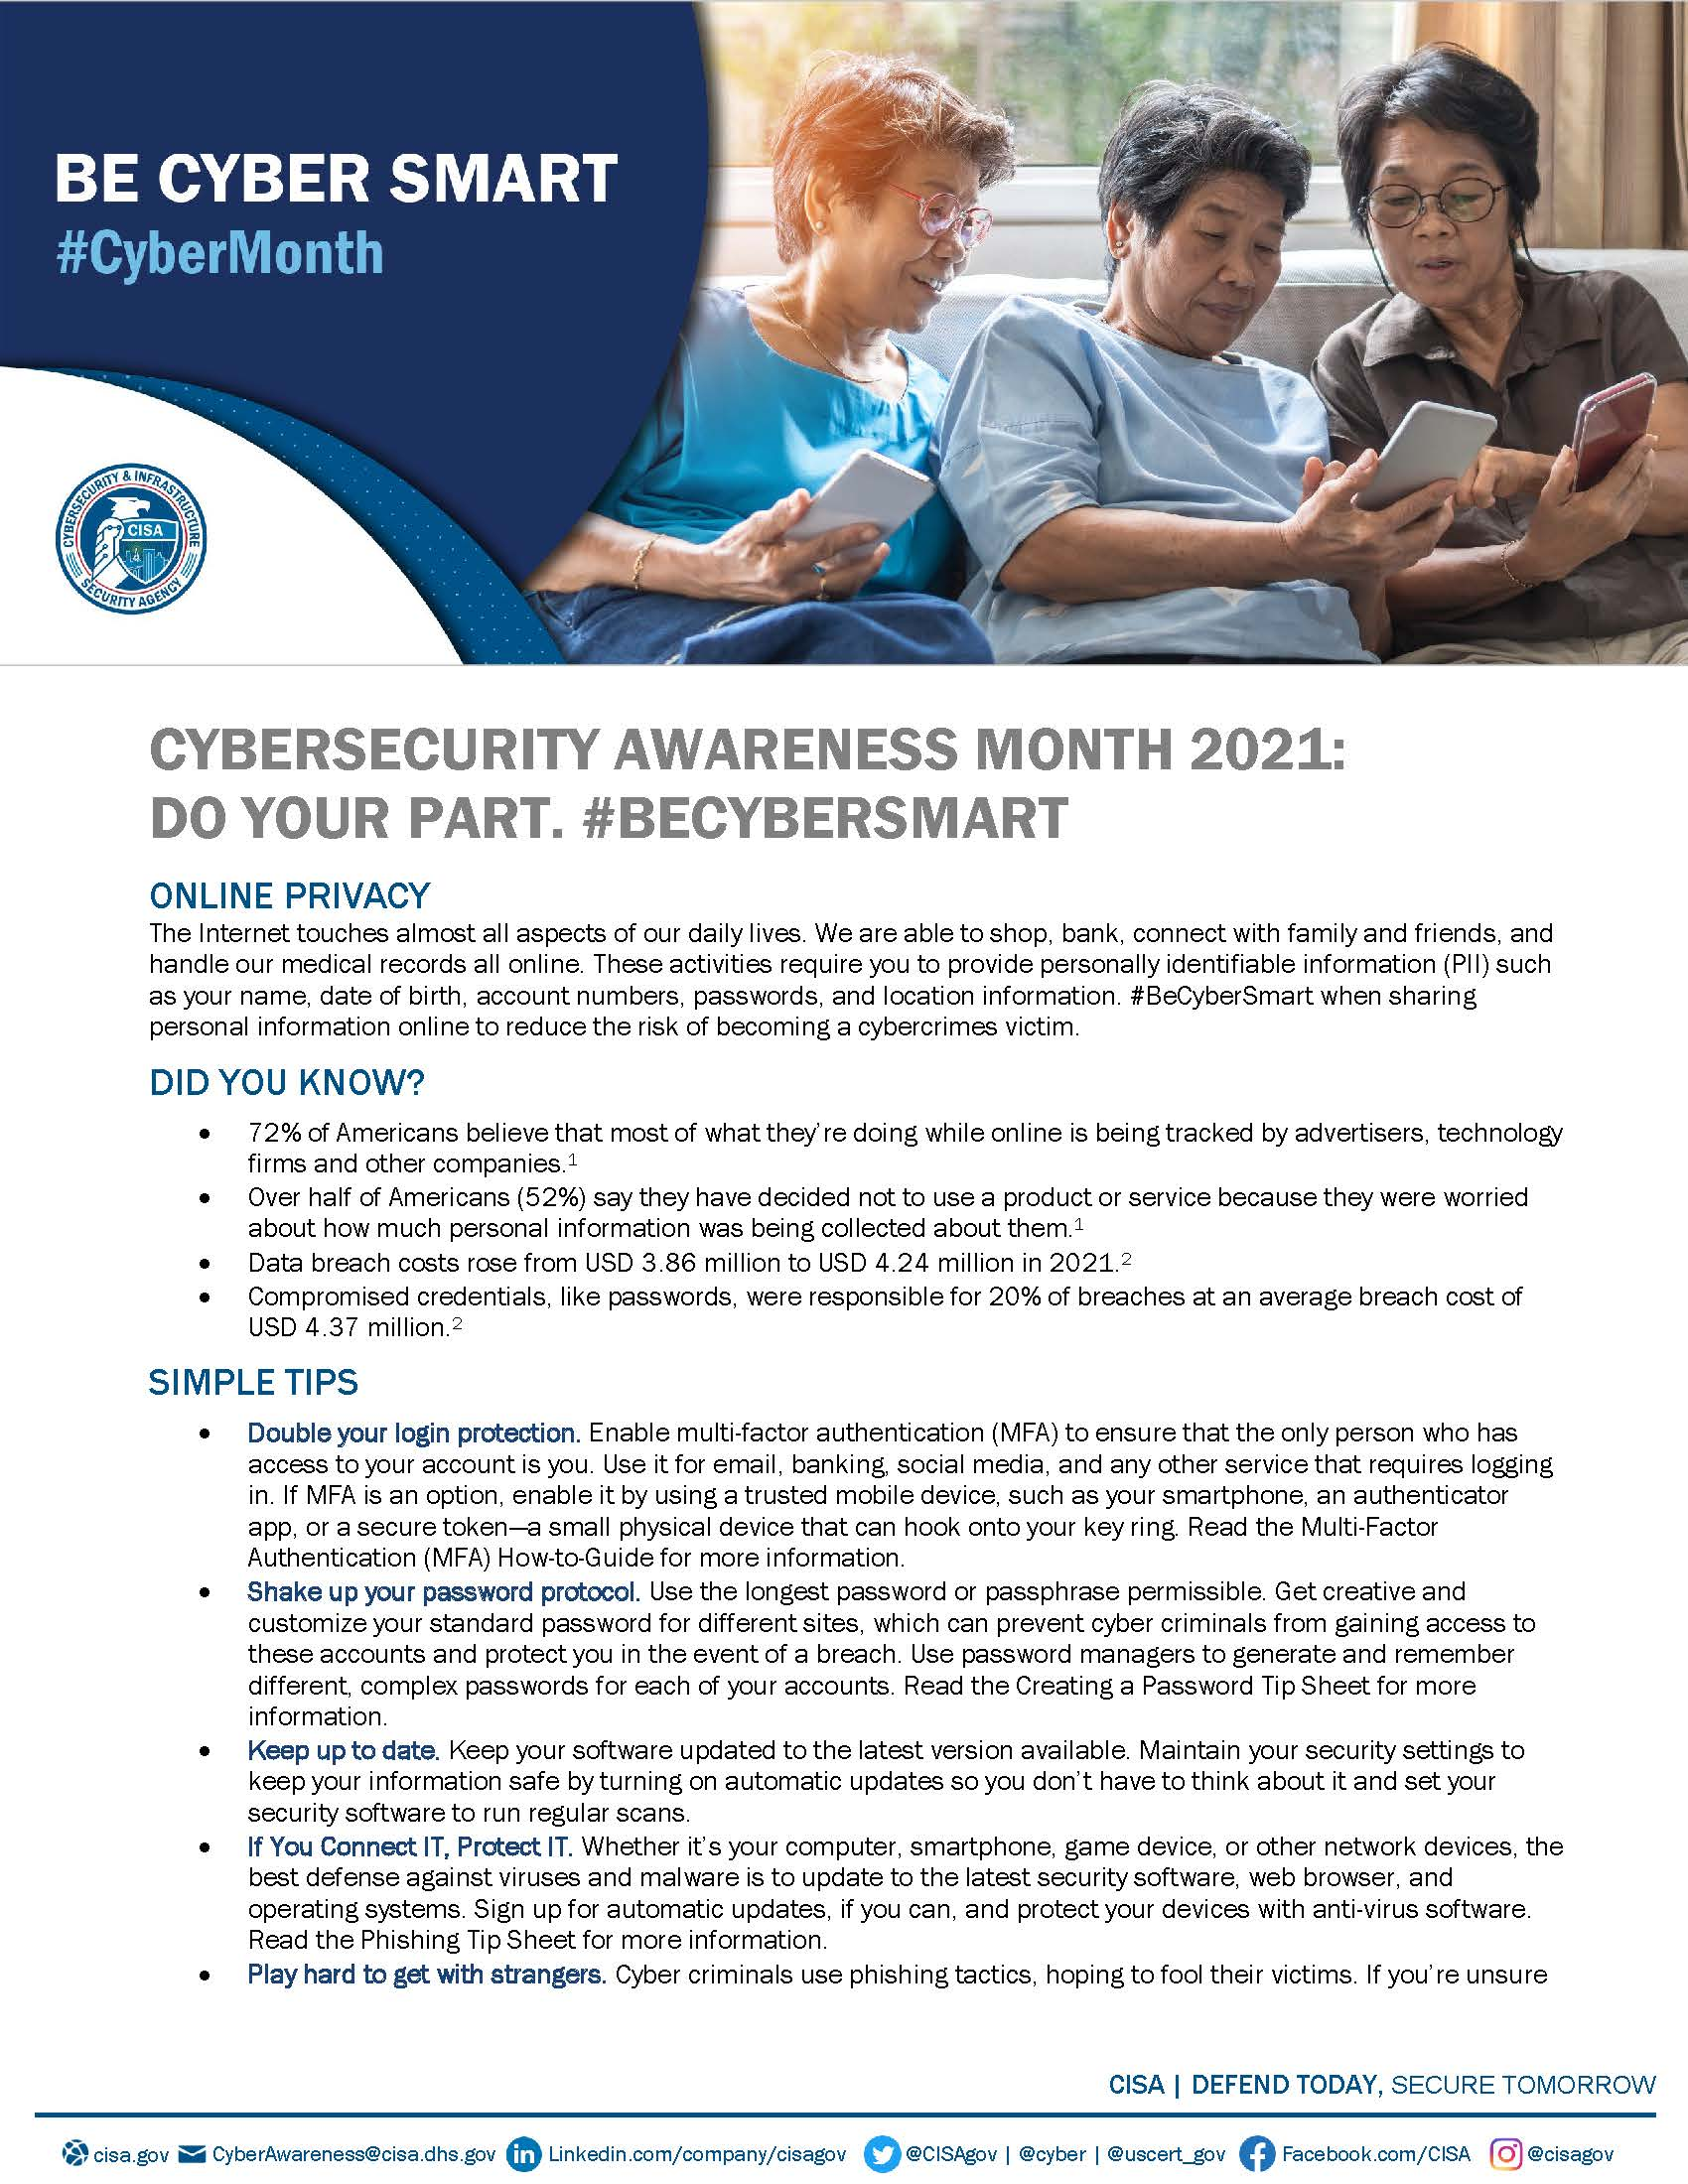 Cybersecurity Awareness Month 2021 - Online Privacy Tip Sheet_Page_1